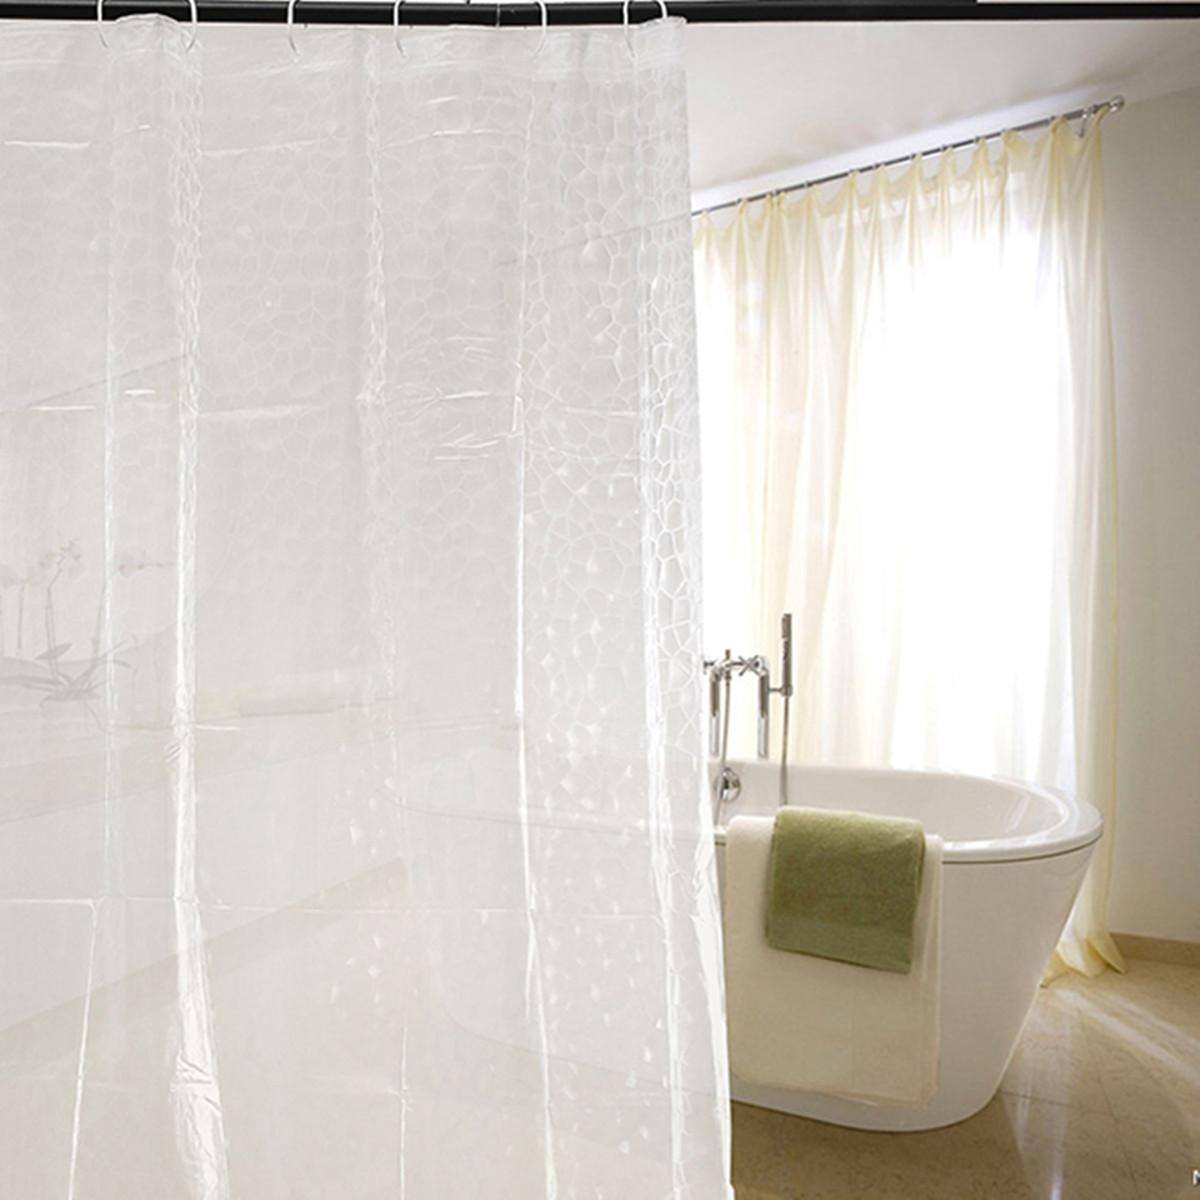 New 180*180cm 3D Water Effect Cube Design Shower Curtain Water Resistance  Bathing EVA Clear Thicker Waterproof Bathroom Curtains 2018 from dh527, ...